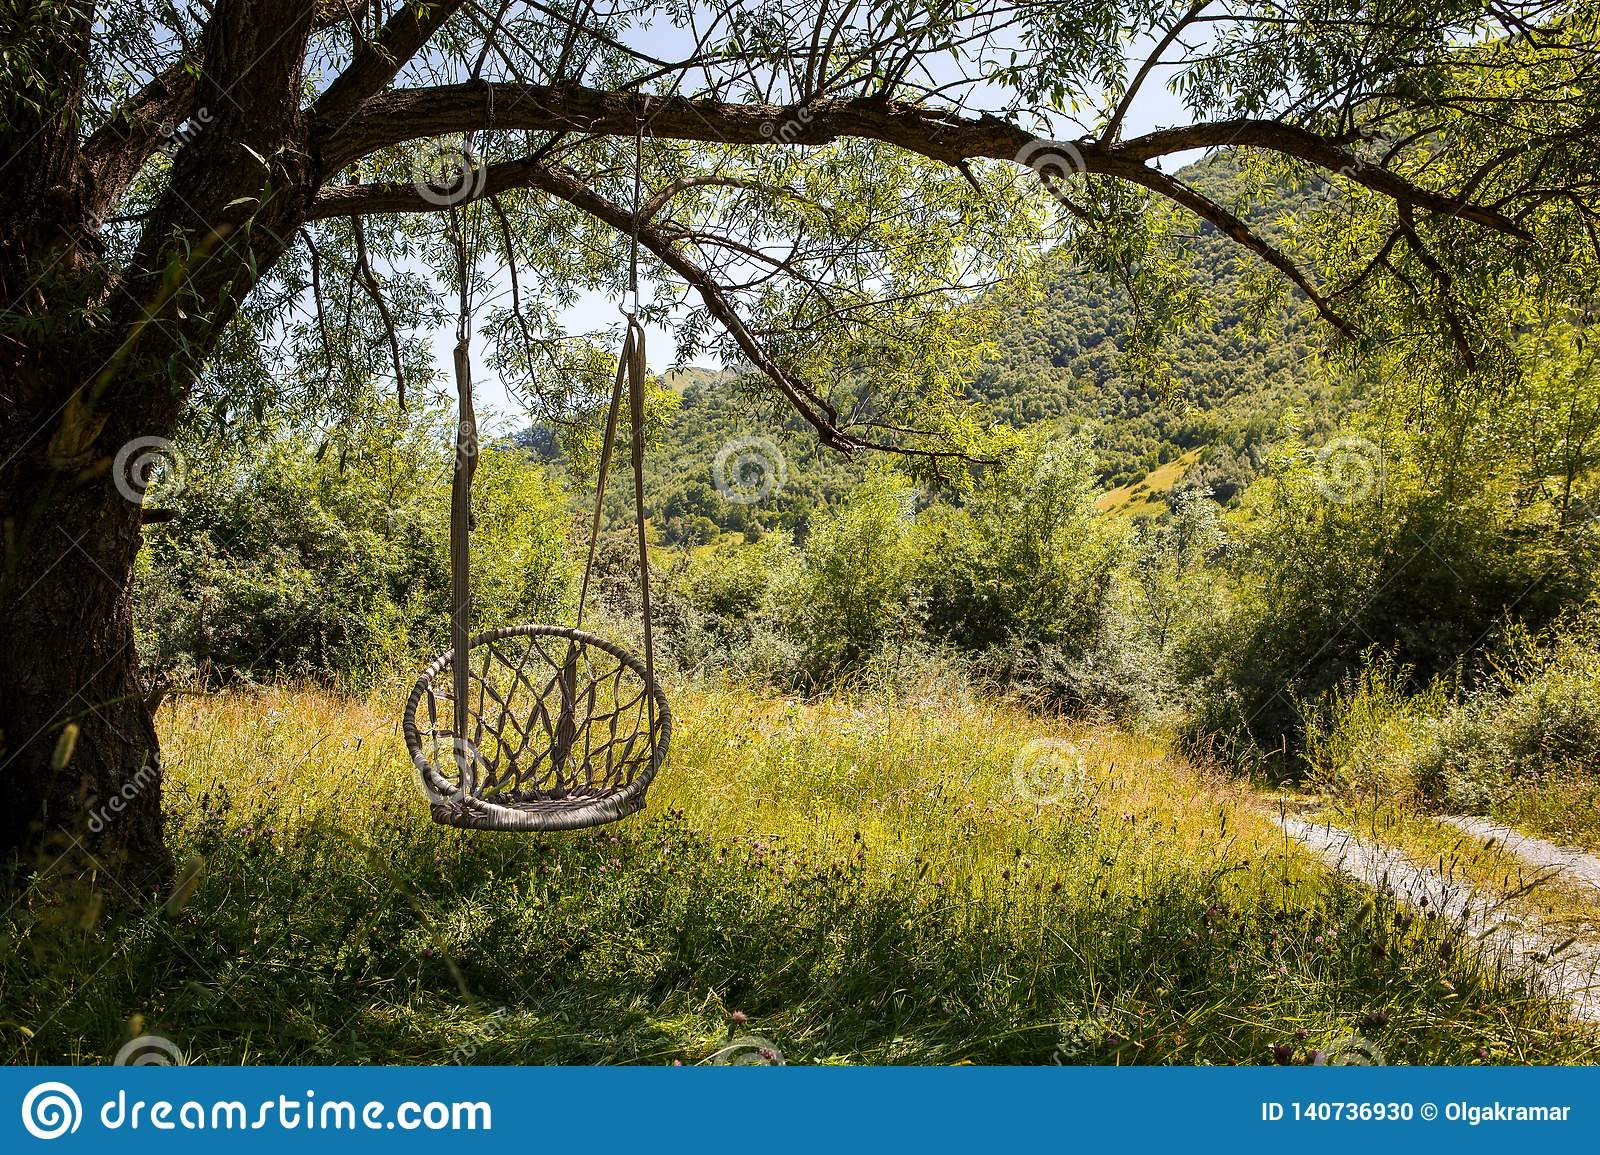 A Wicker Swing Chair Hangs On A Large Tree Branch Stock Photo Image Of Large Empty 140736930